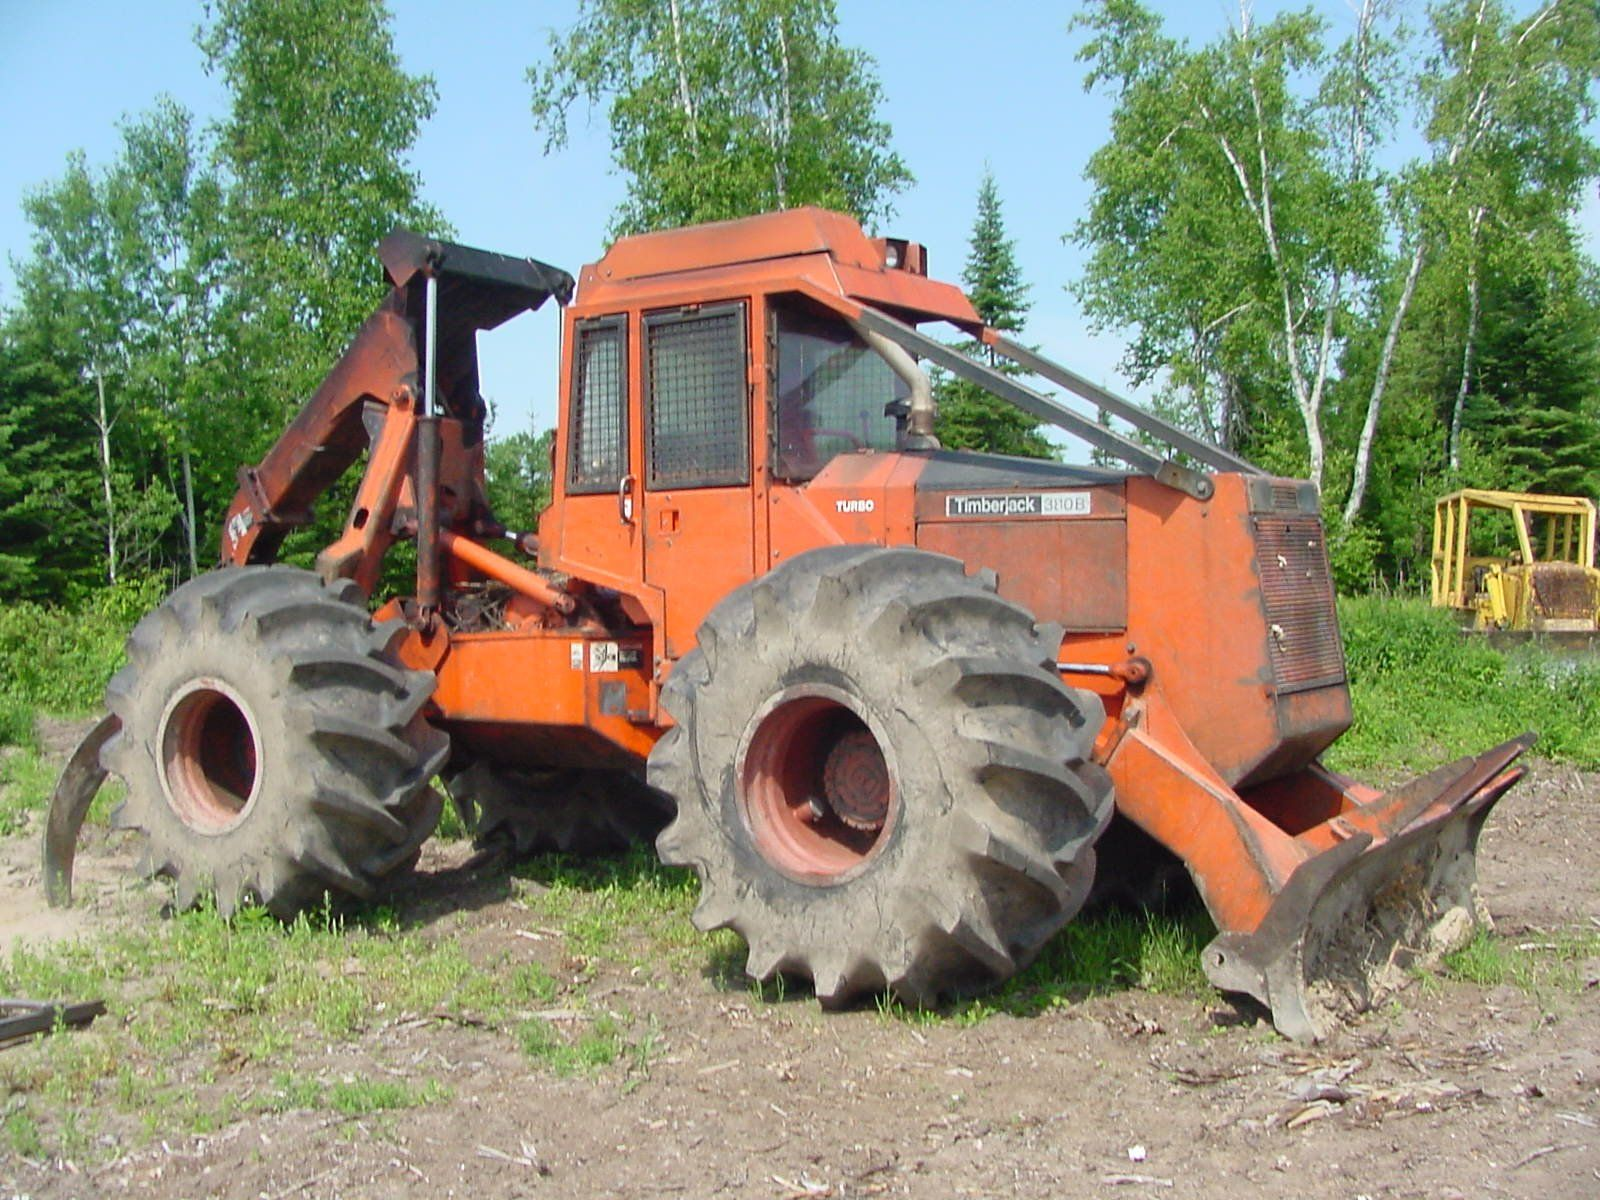 Tree farmer skidder for sale in ny - Skidders 1988 Timberjack 380b